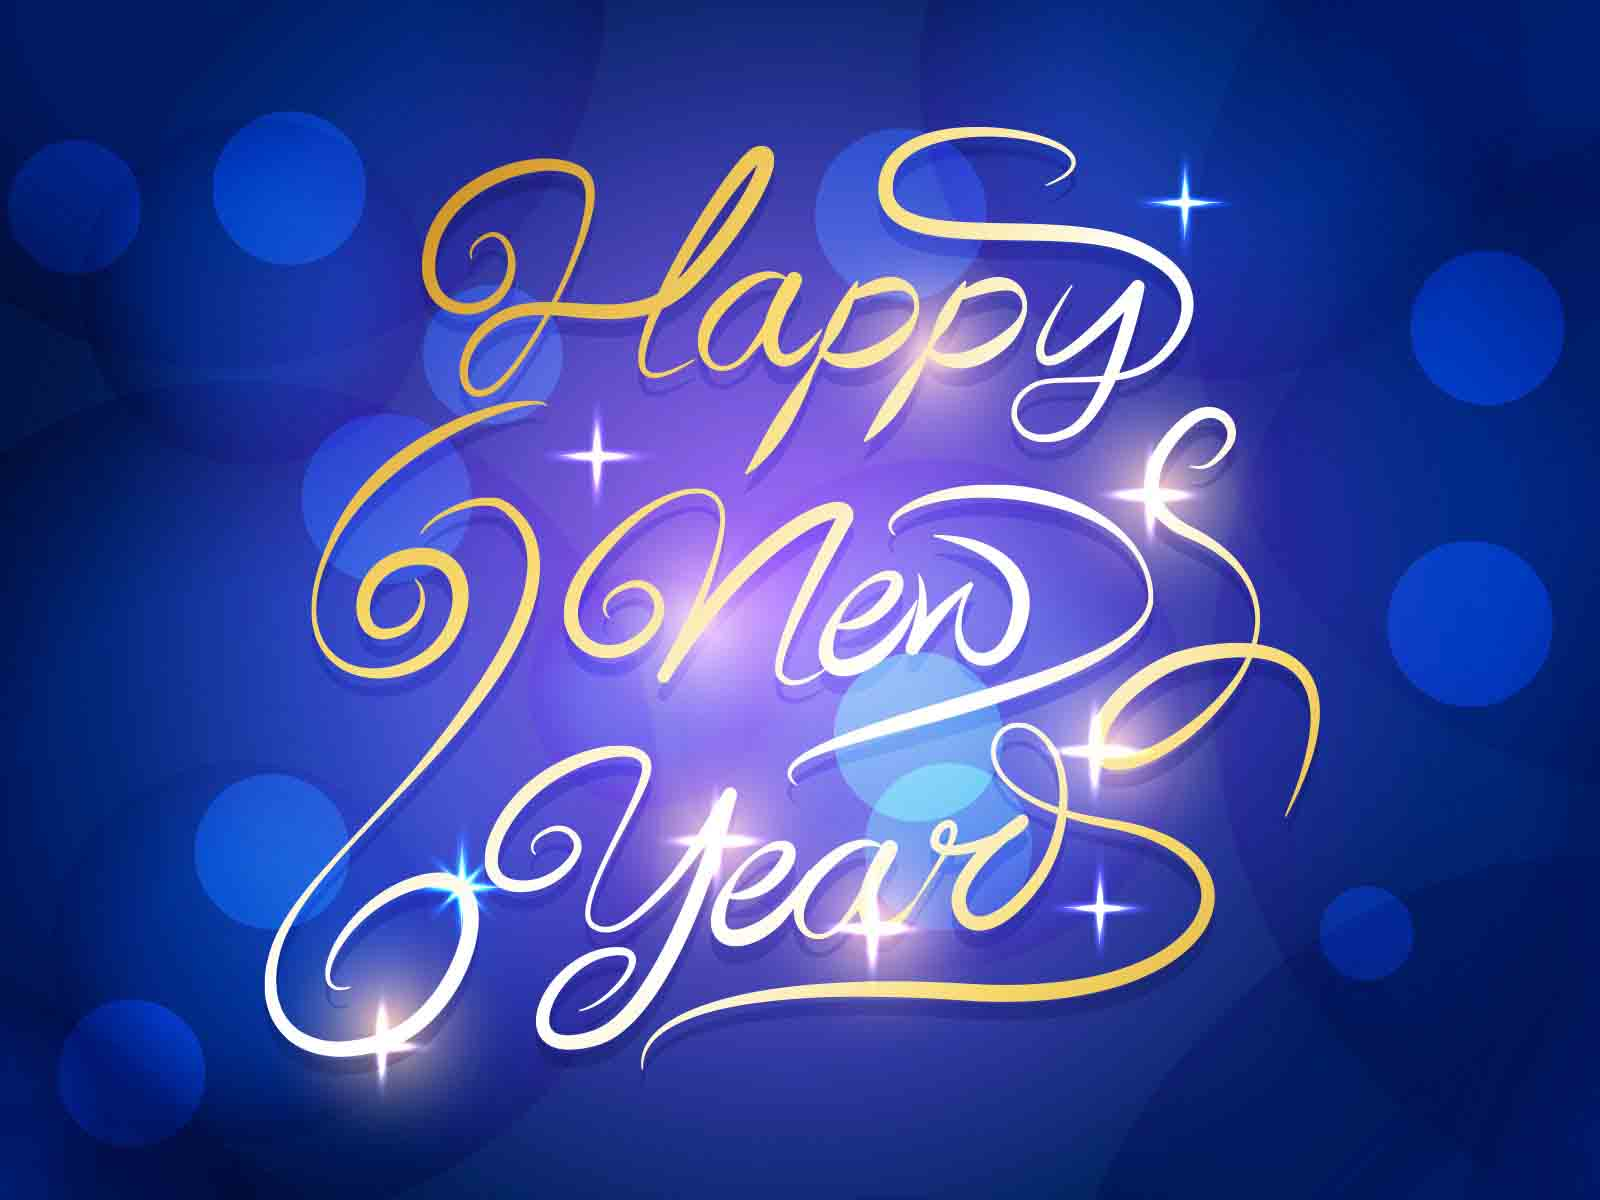 beautiful happy new year text pictures images wallpaper